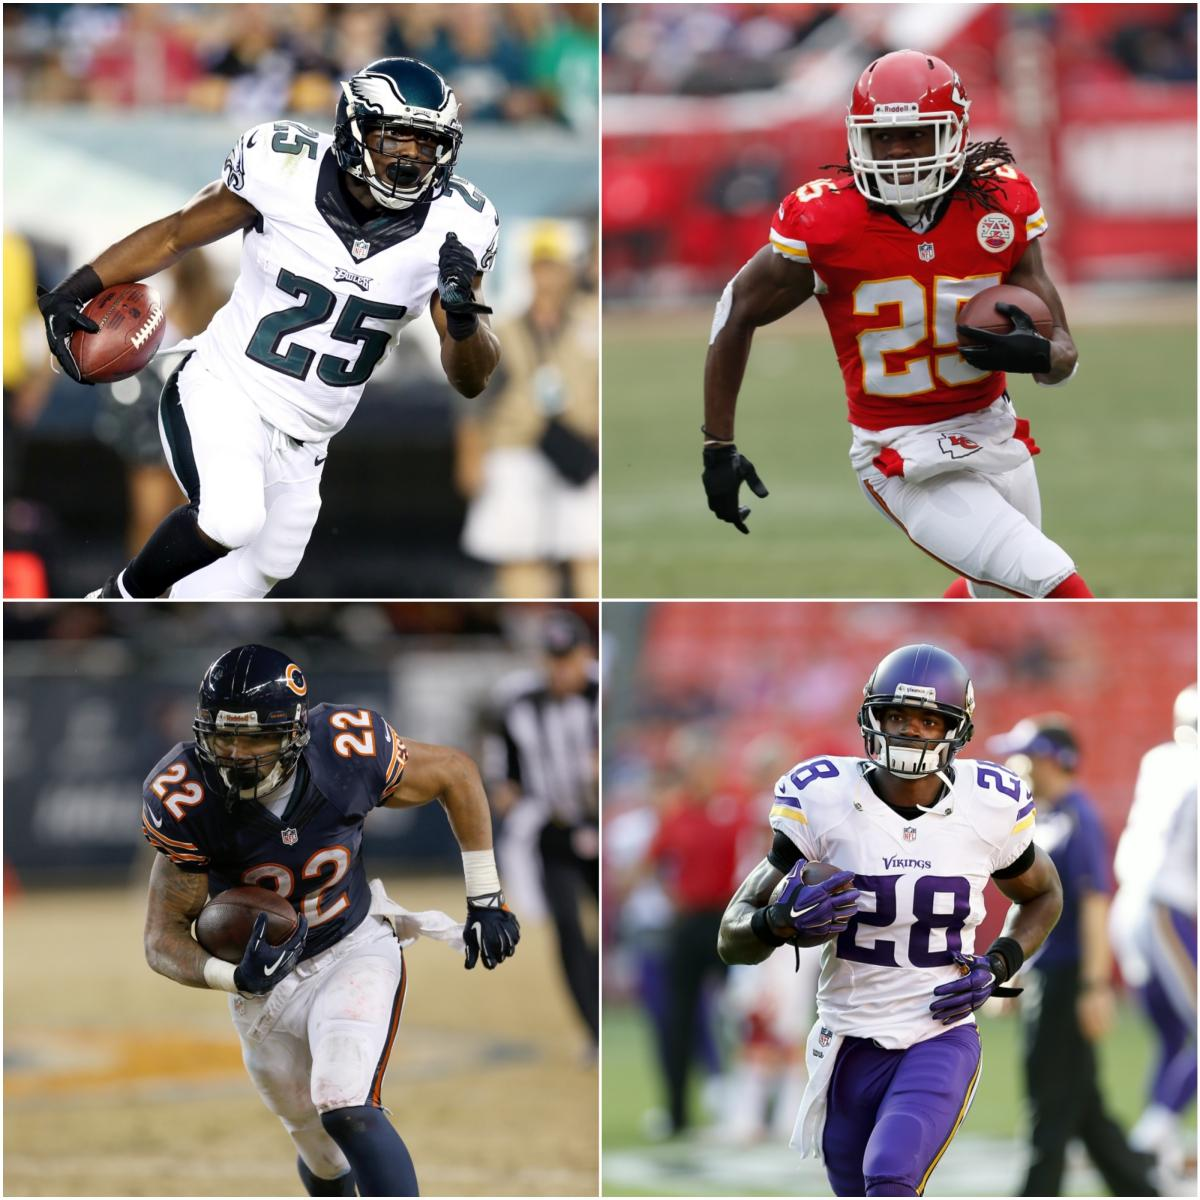 Who was the 1st overall draft pick in your fantasy league? http://t.co/eeDXQB5vMi